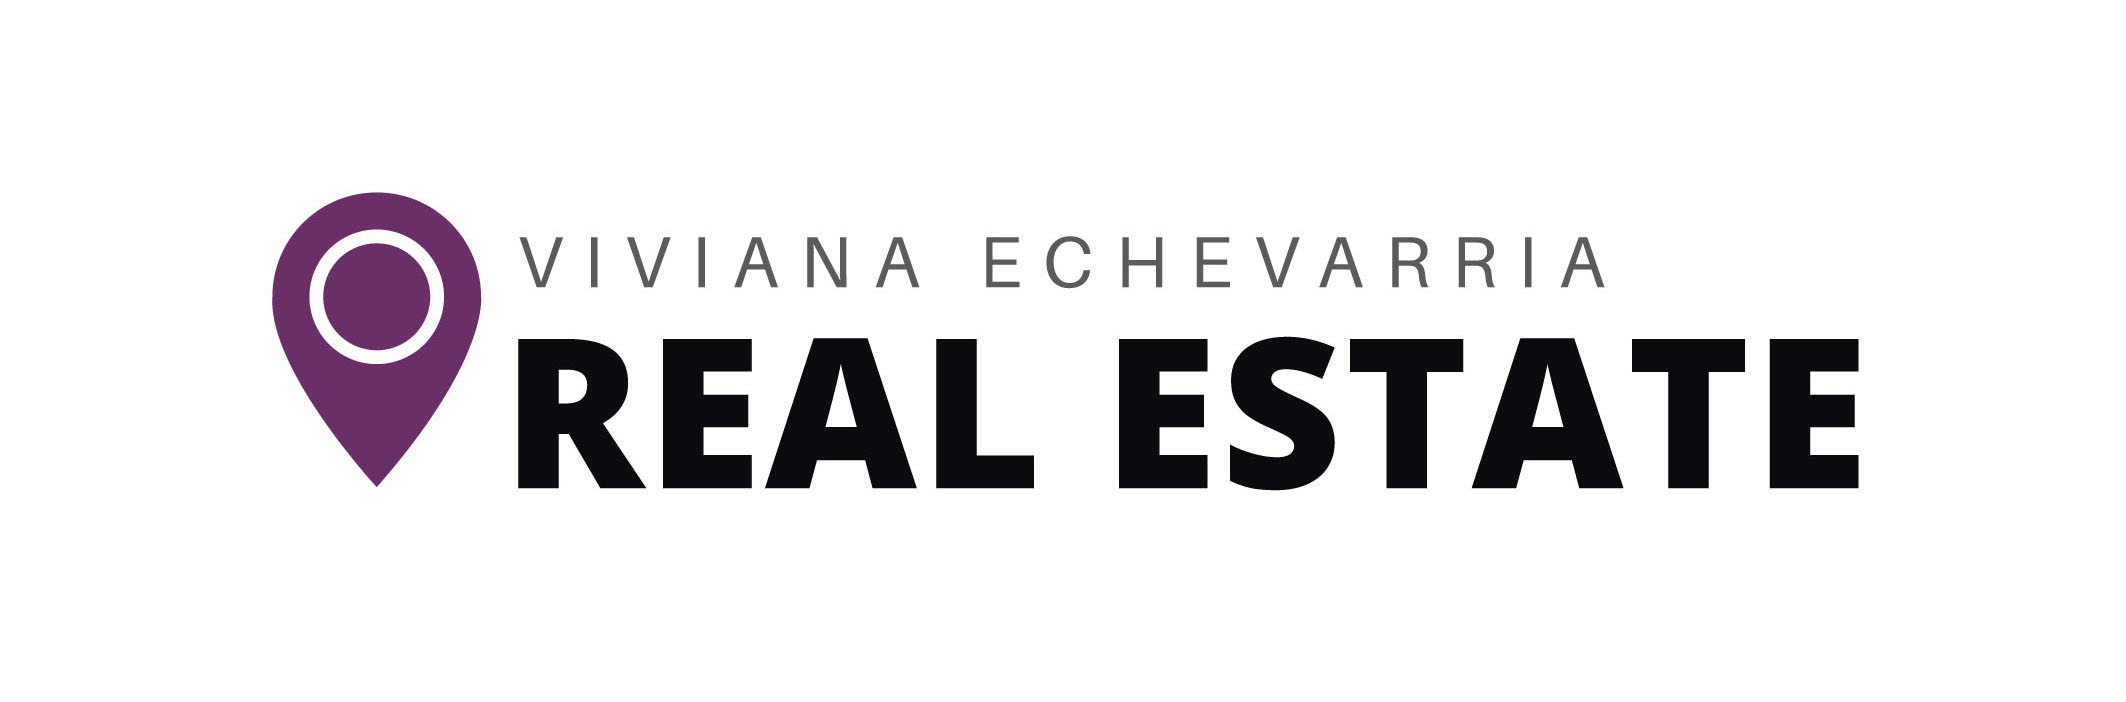 Viviana Echevarria Real Estate